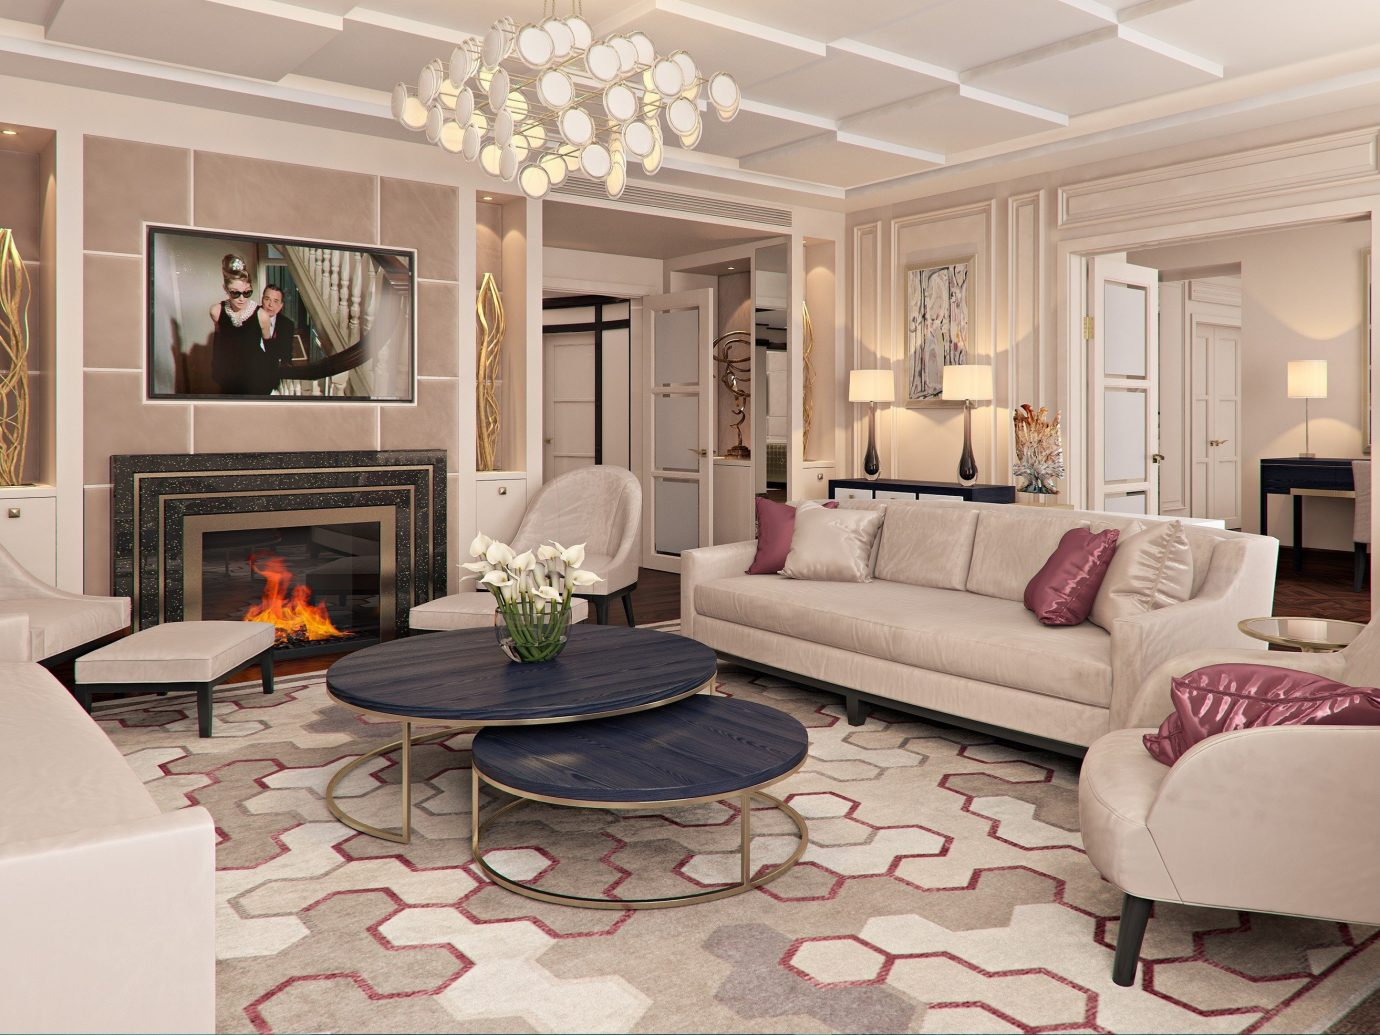 Architecture Fall Travel Hotels Luxury Travel News Trip Ideas Living indoor living room room floor sofa interior design window furniture ceiling home Suite Fireplace Lobby couch flooring estate interior designer real estate decorated table Bedroom area